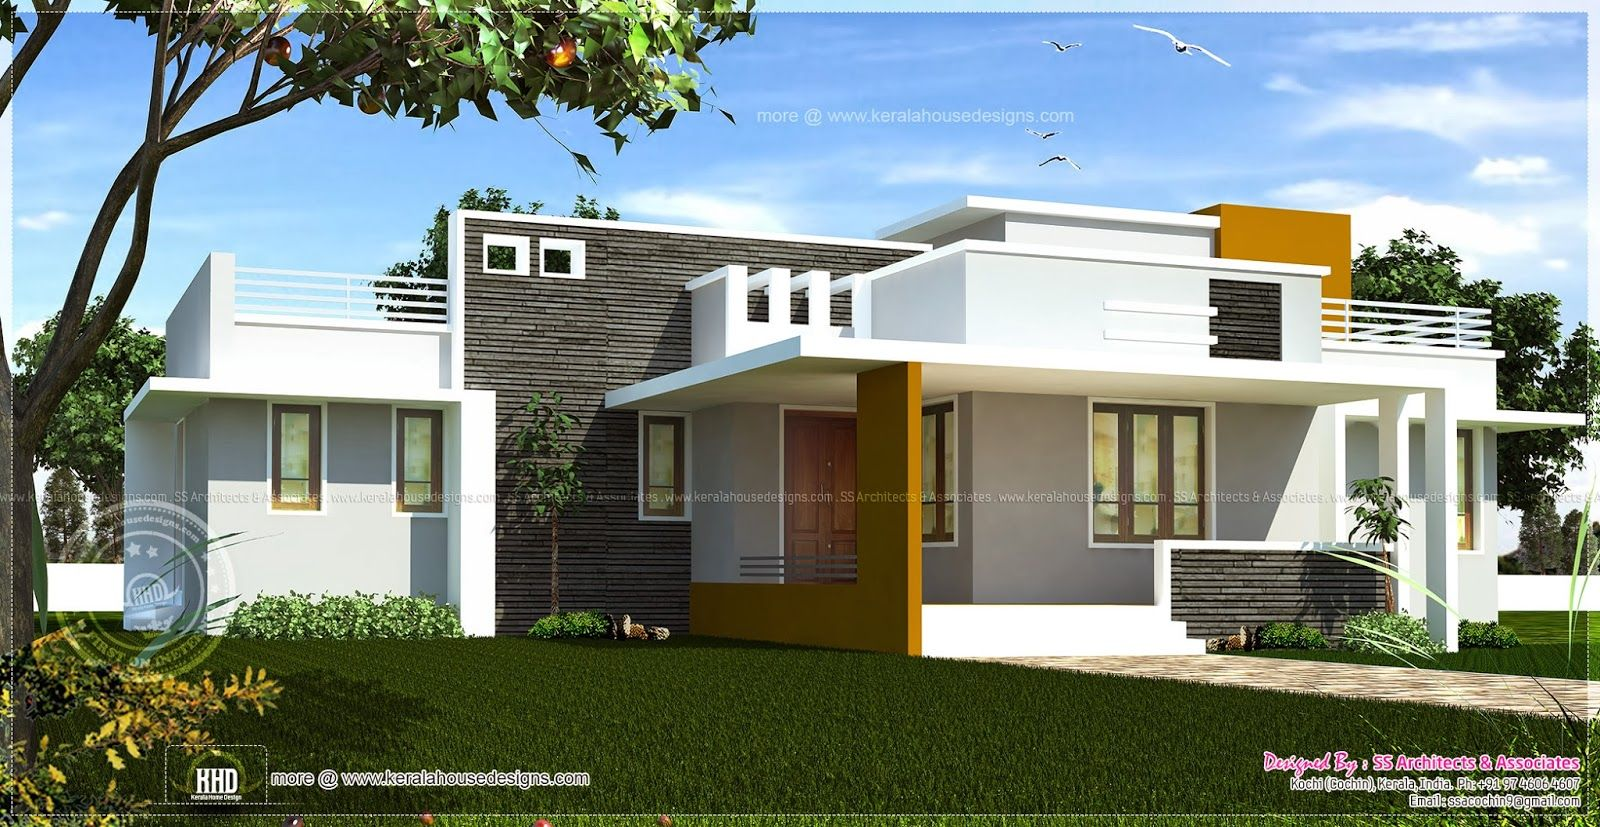 Excellent single home designs single floor contemporary for Single house design